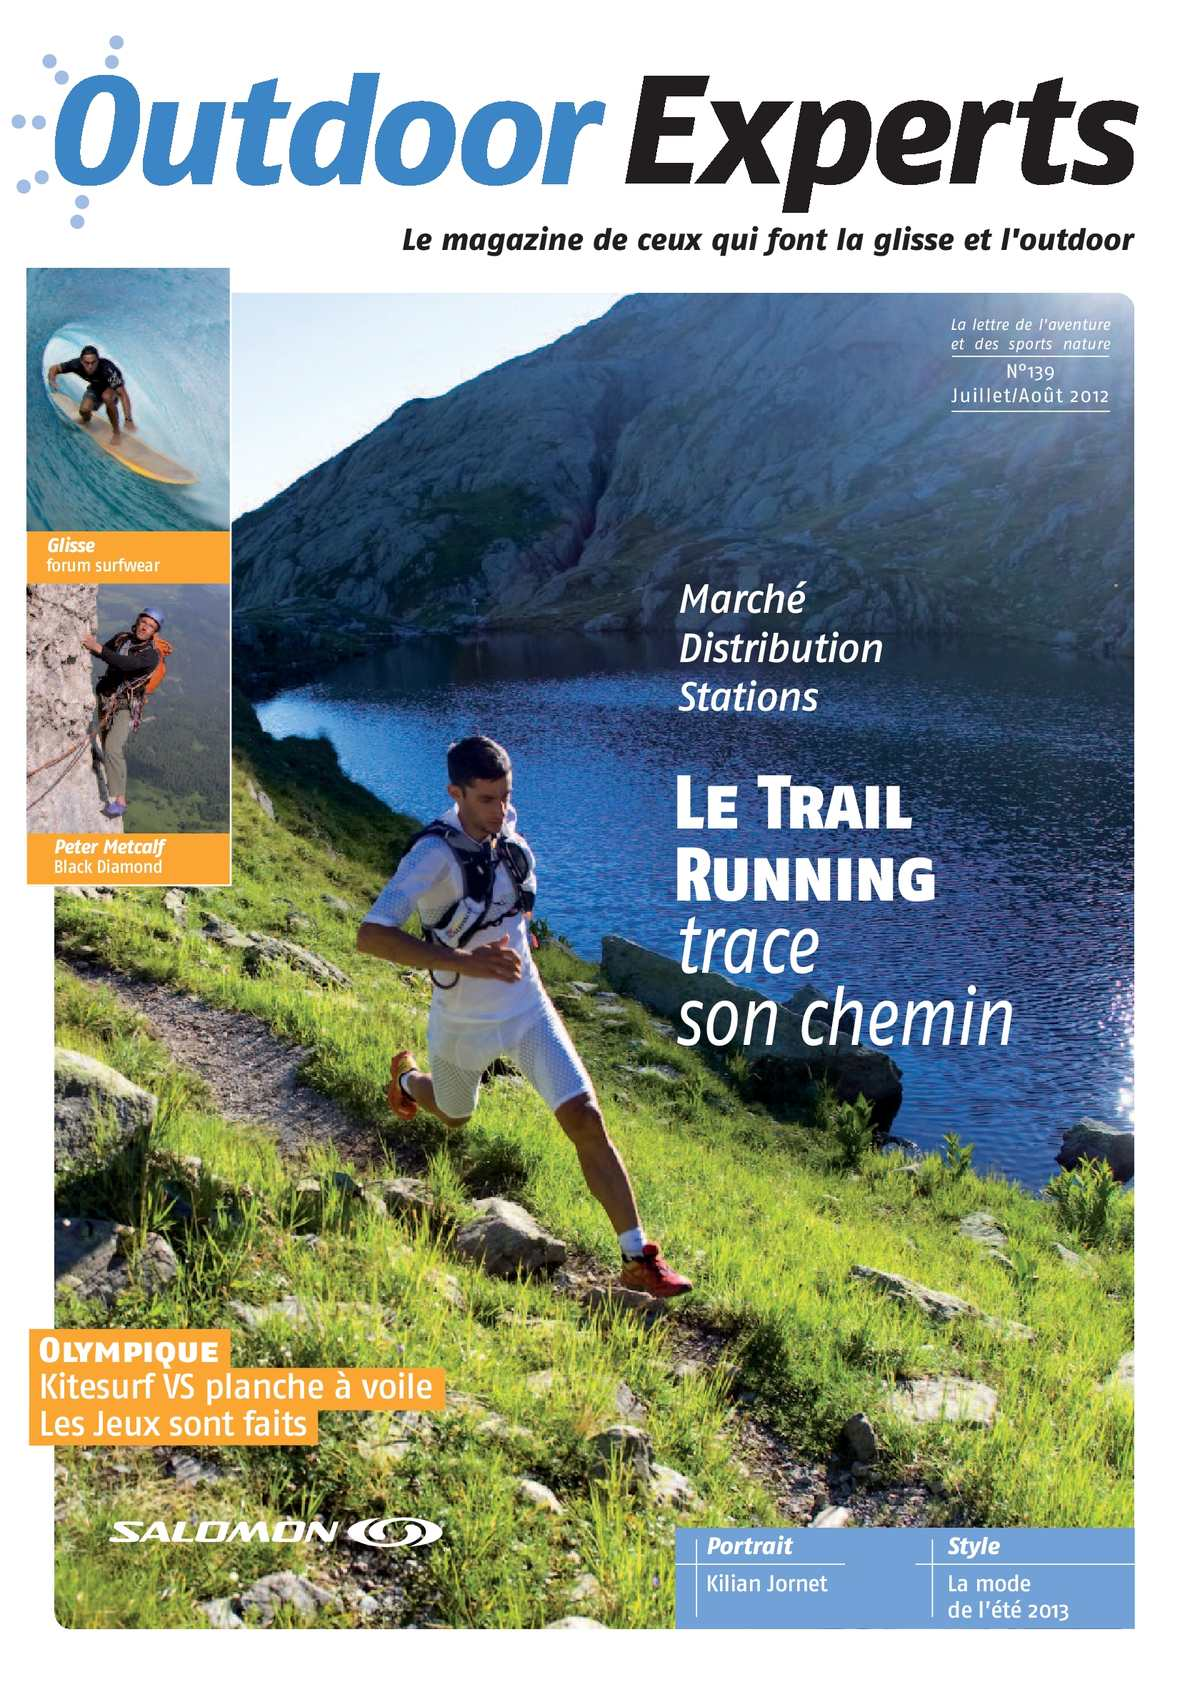 Outdoor Experts Magazine n°139 Calaméo juilletaoût 2012 Yby7fg6